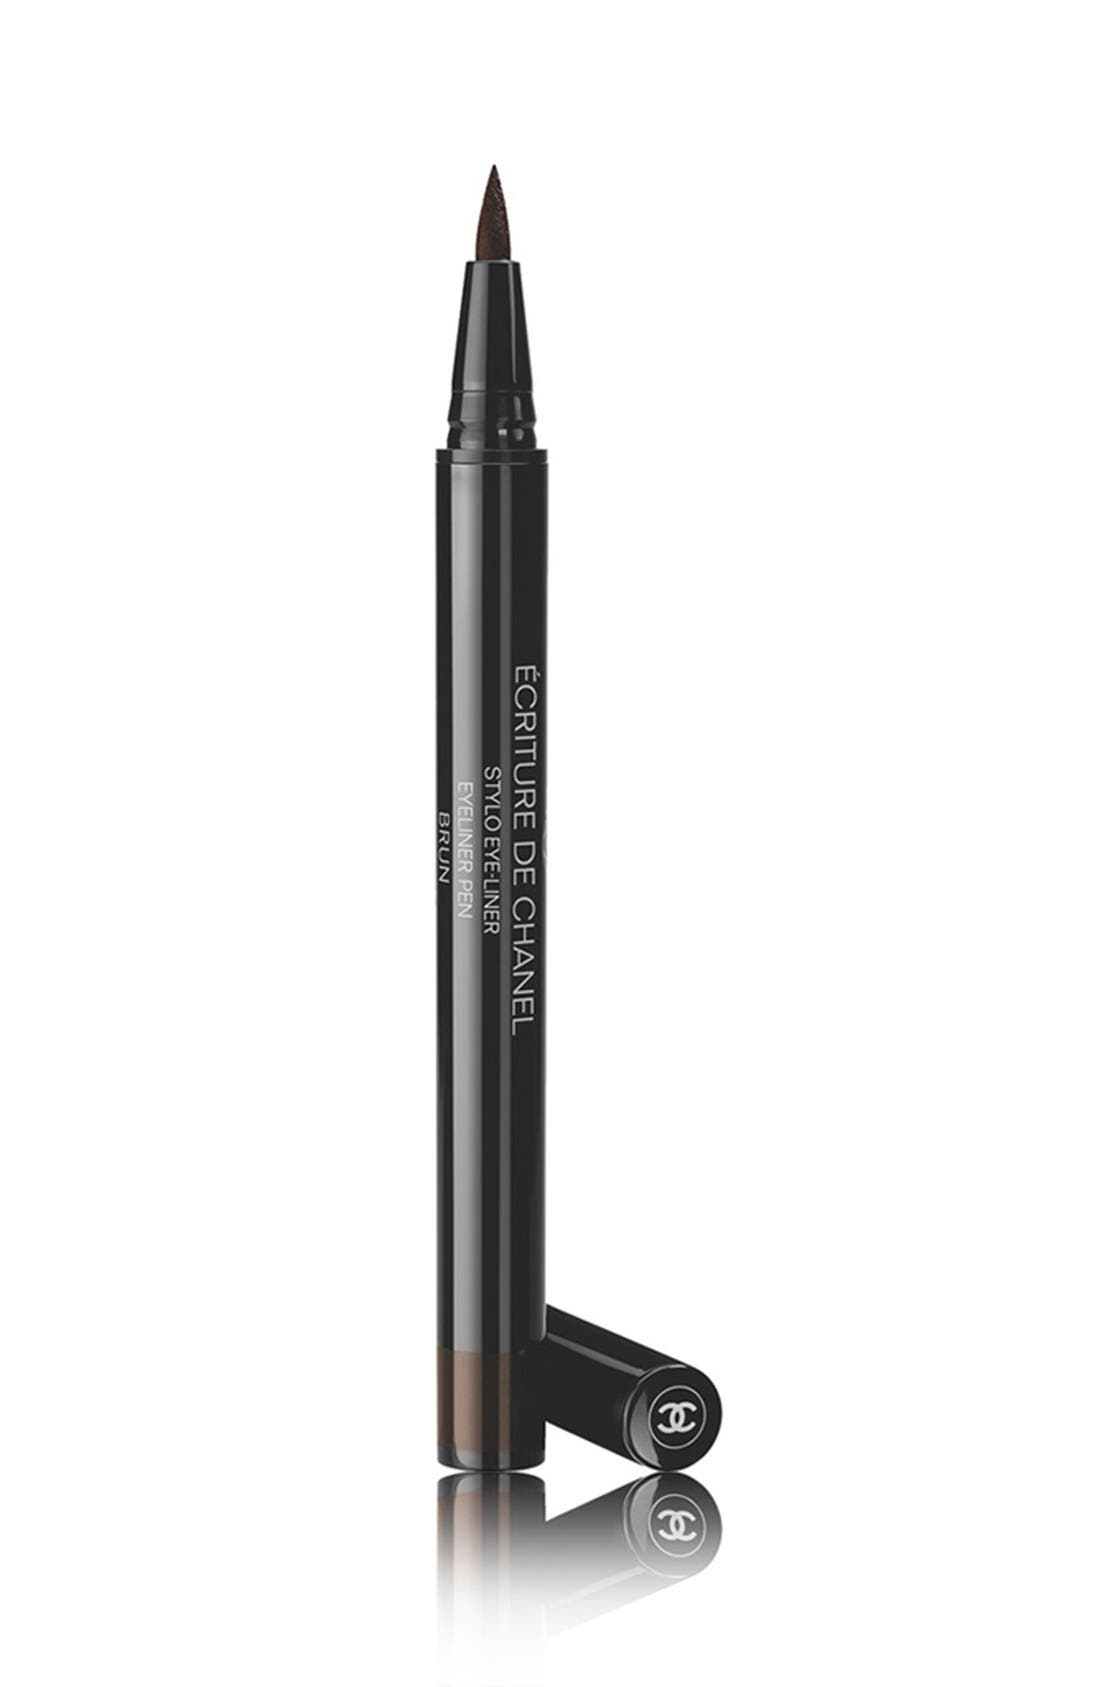 CHANEL ÉCRITURE DE CHANEL 